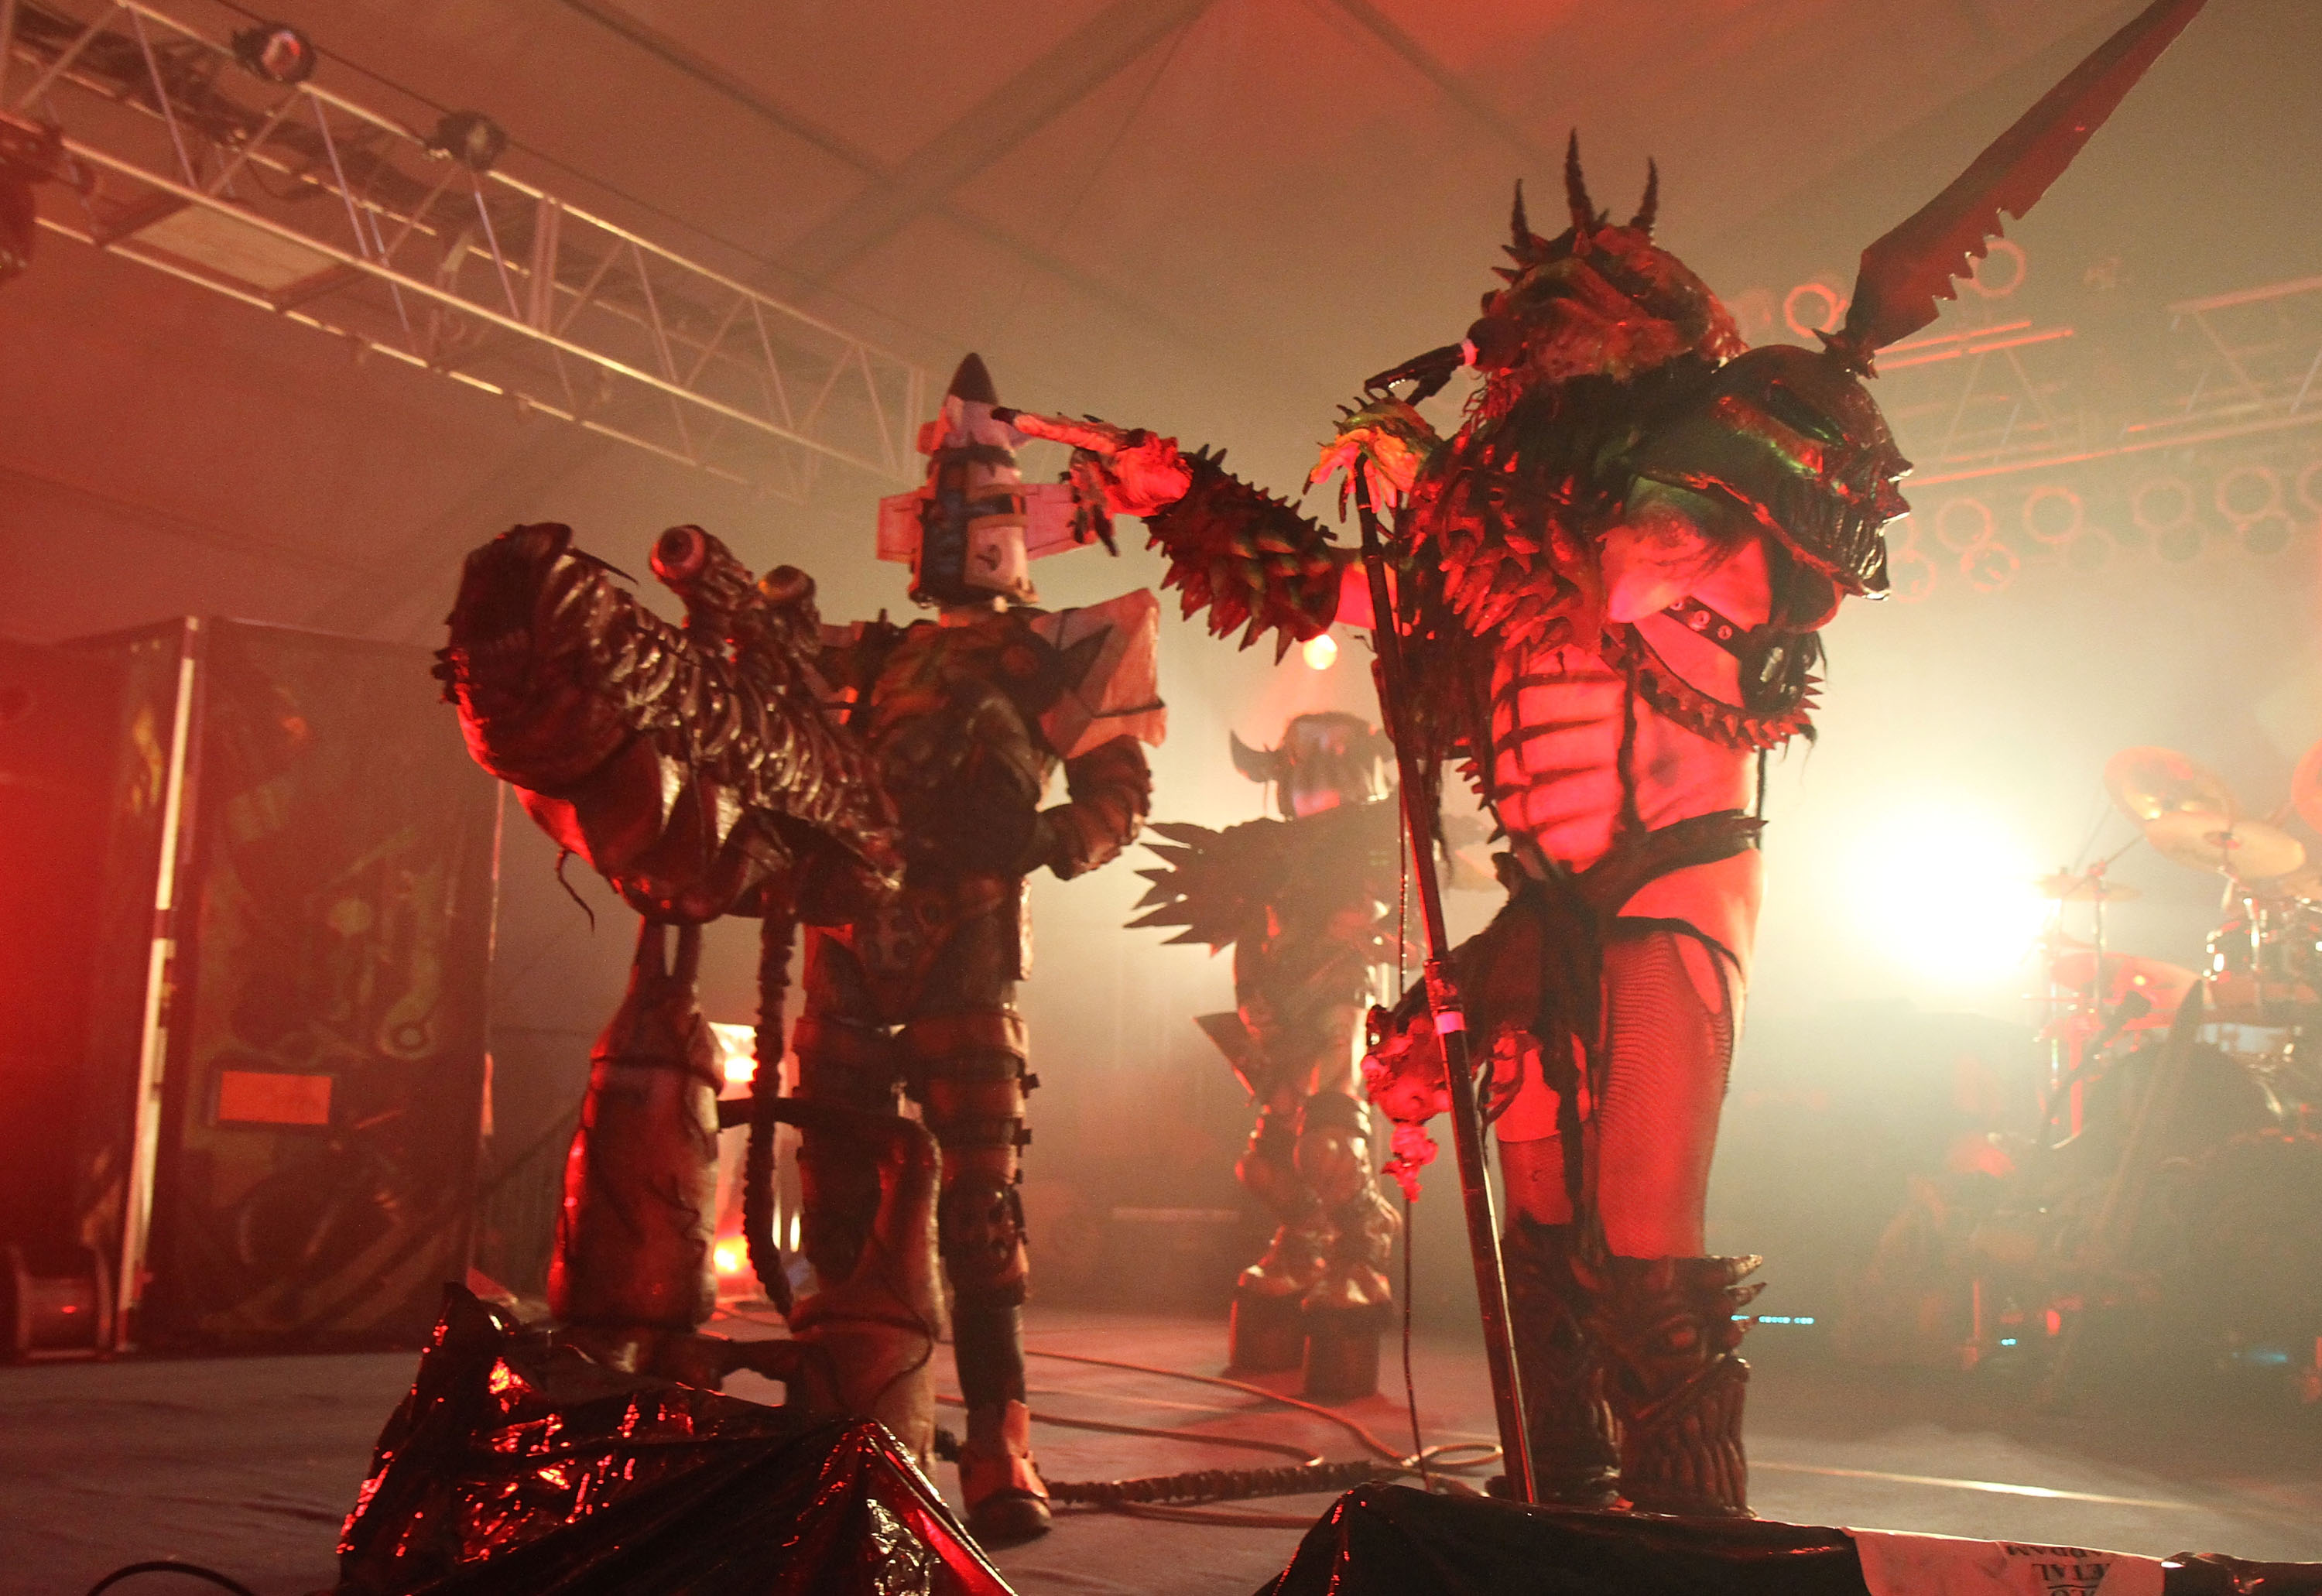 MANCHESTER, TN - JUNE 12:  Oderus Urungus (R) of GWAR performs onstage during Bonnaroo 2010 at The Other Tent on June 12, 201